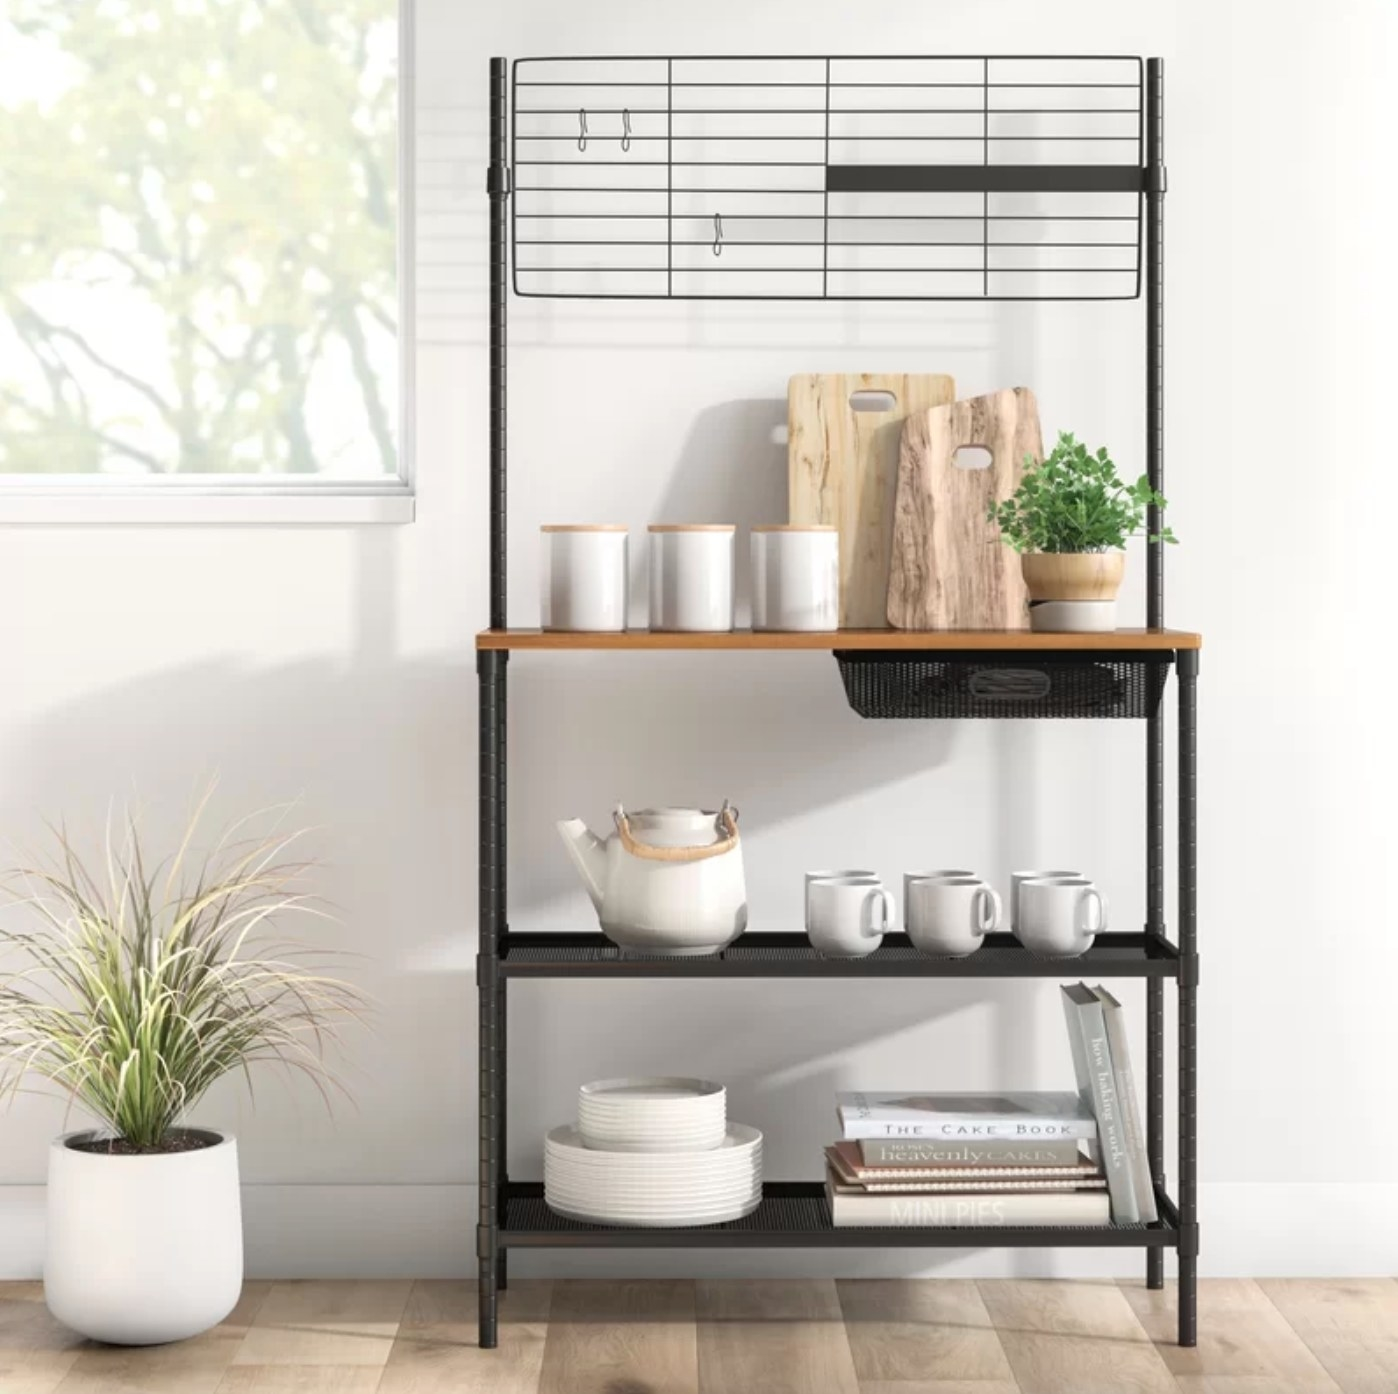 The steel baker's rack holding mugs and cutting boards